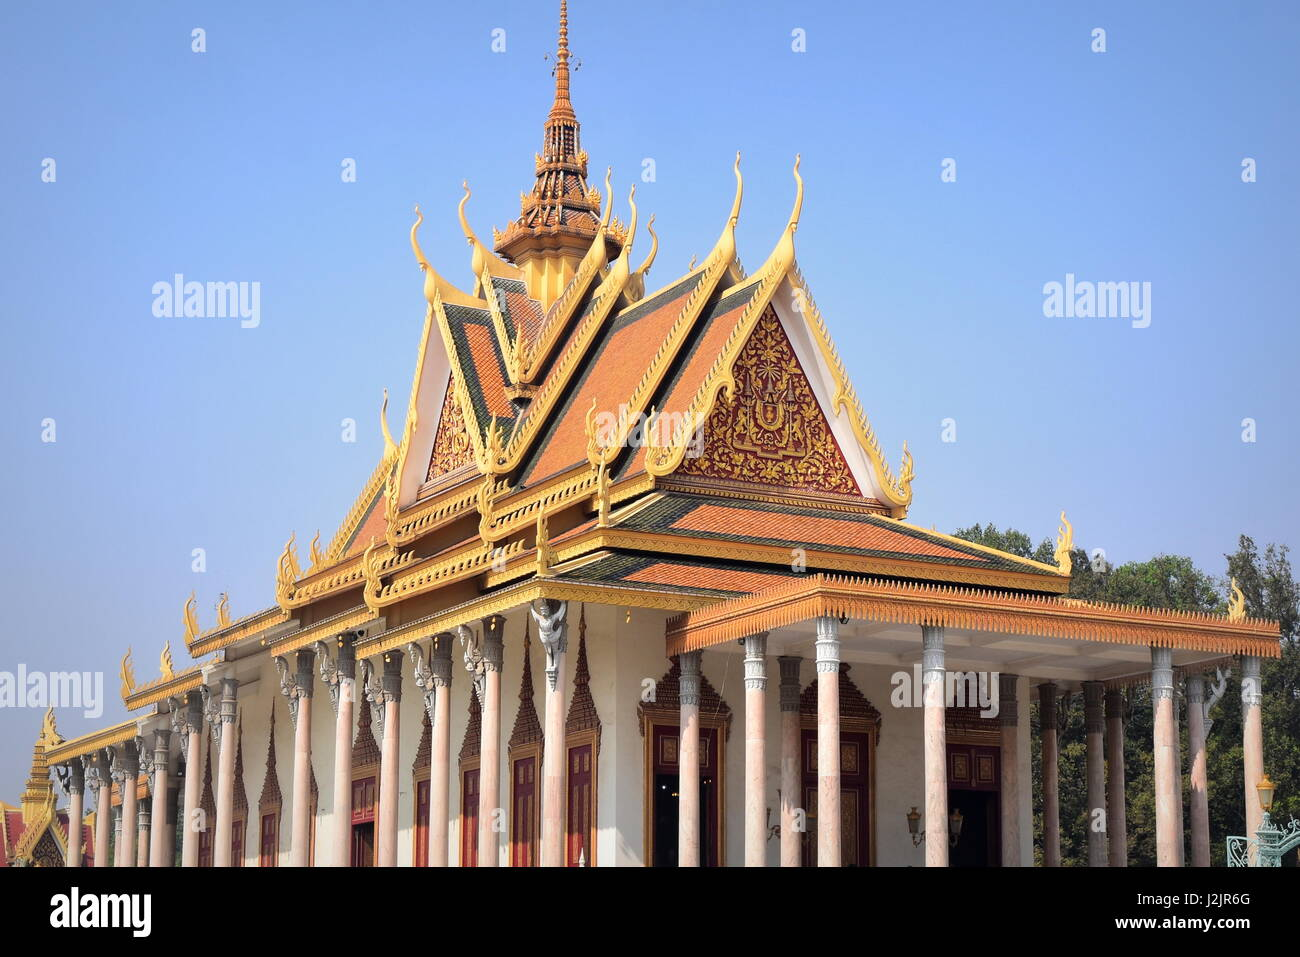 Royal palace of Phnom Penh - Throne Hall - with blue sky - Cambodia - Stock Image